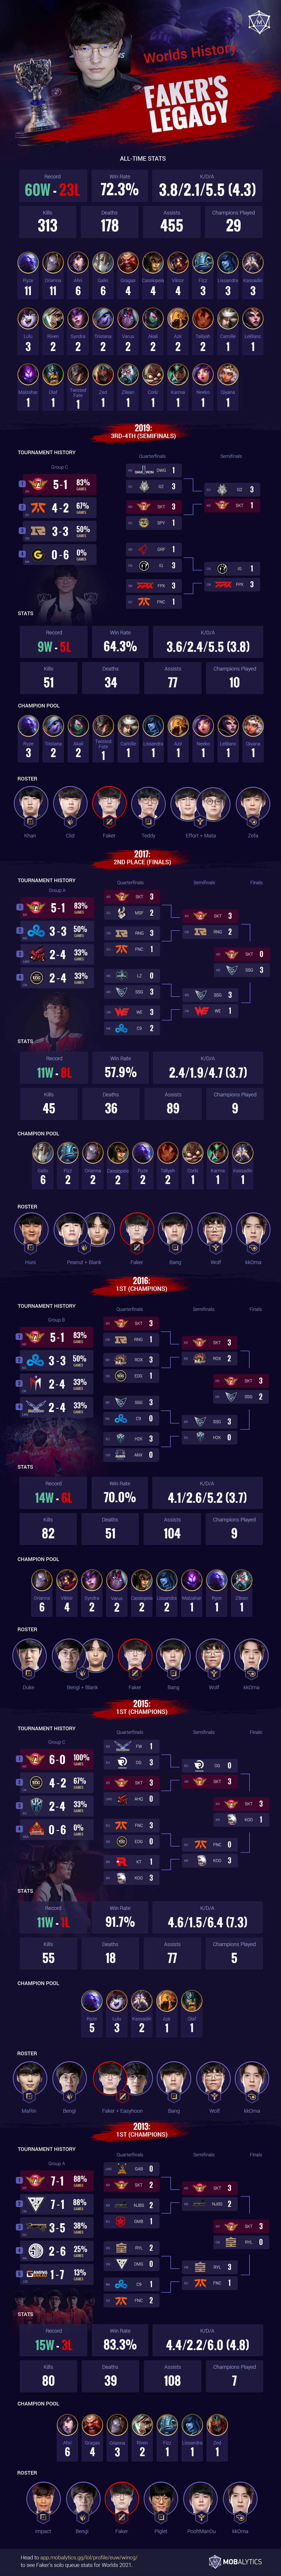 Faker's Worlds Legacy: All-Time Records, Champion Pool Stats, and Teammates Throughout the Years